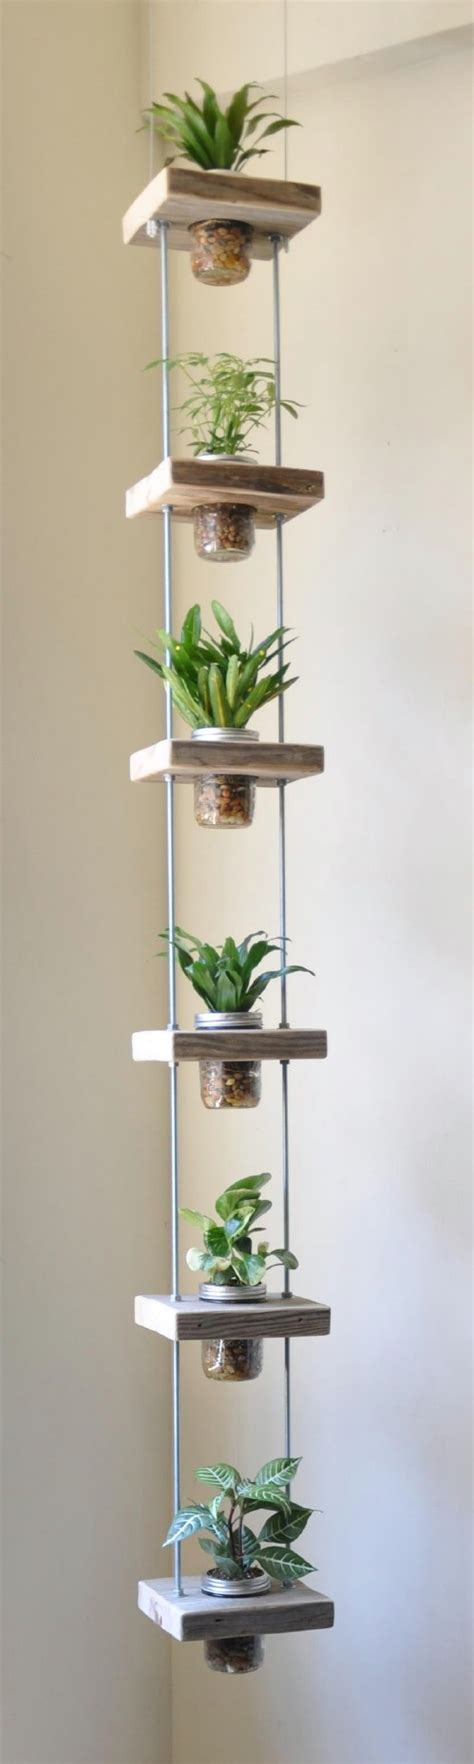 hanging herb garden 18 brilliant and creative diy herb gardens for indoors and